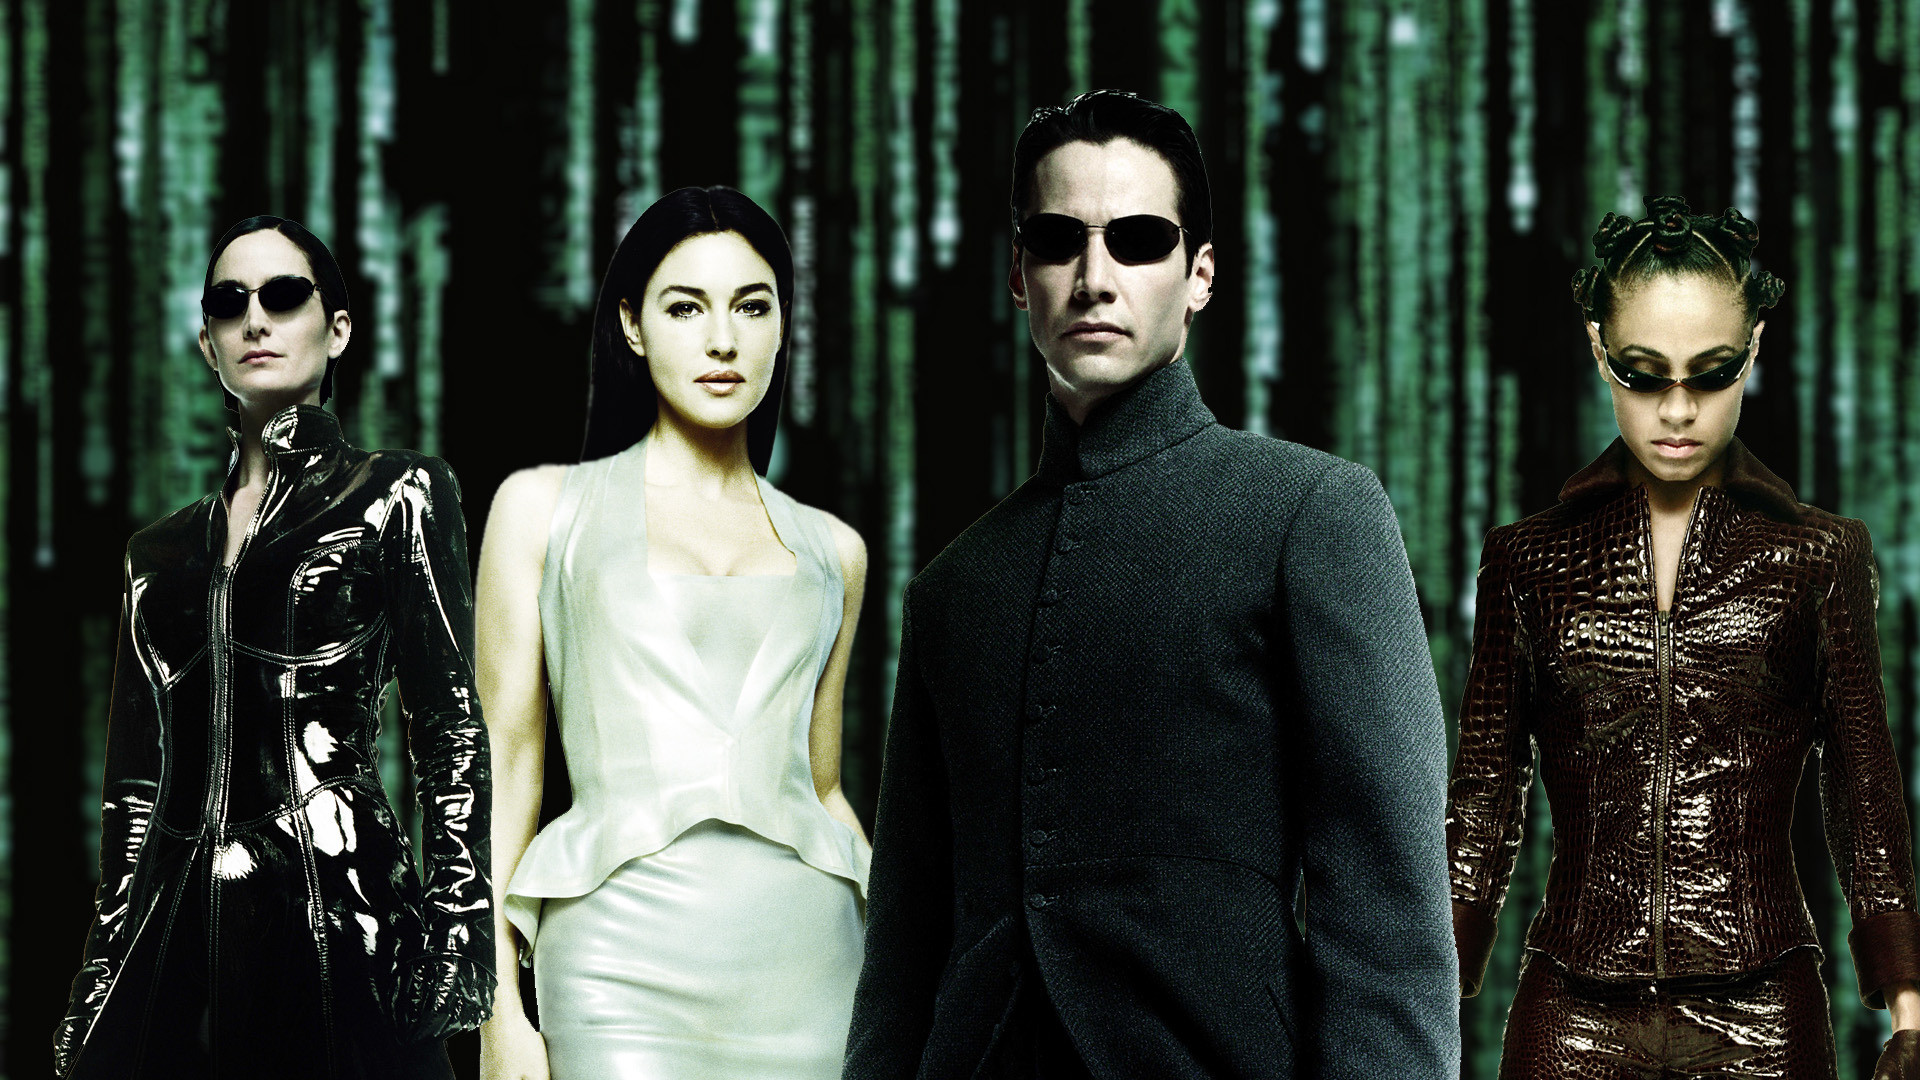 the-matrix-reloaded-5207464a70185.jpg